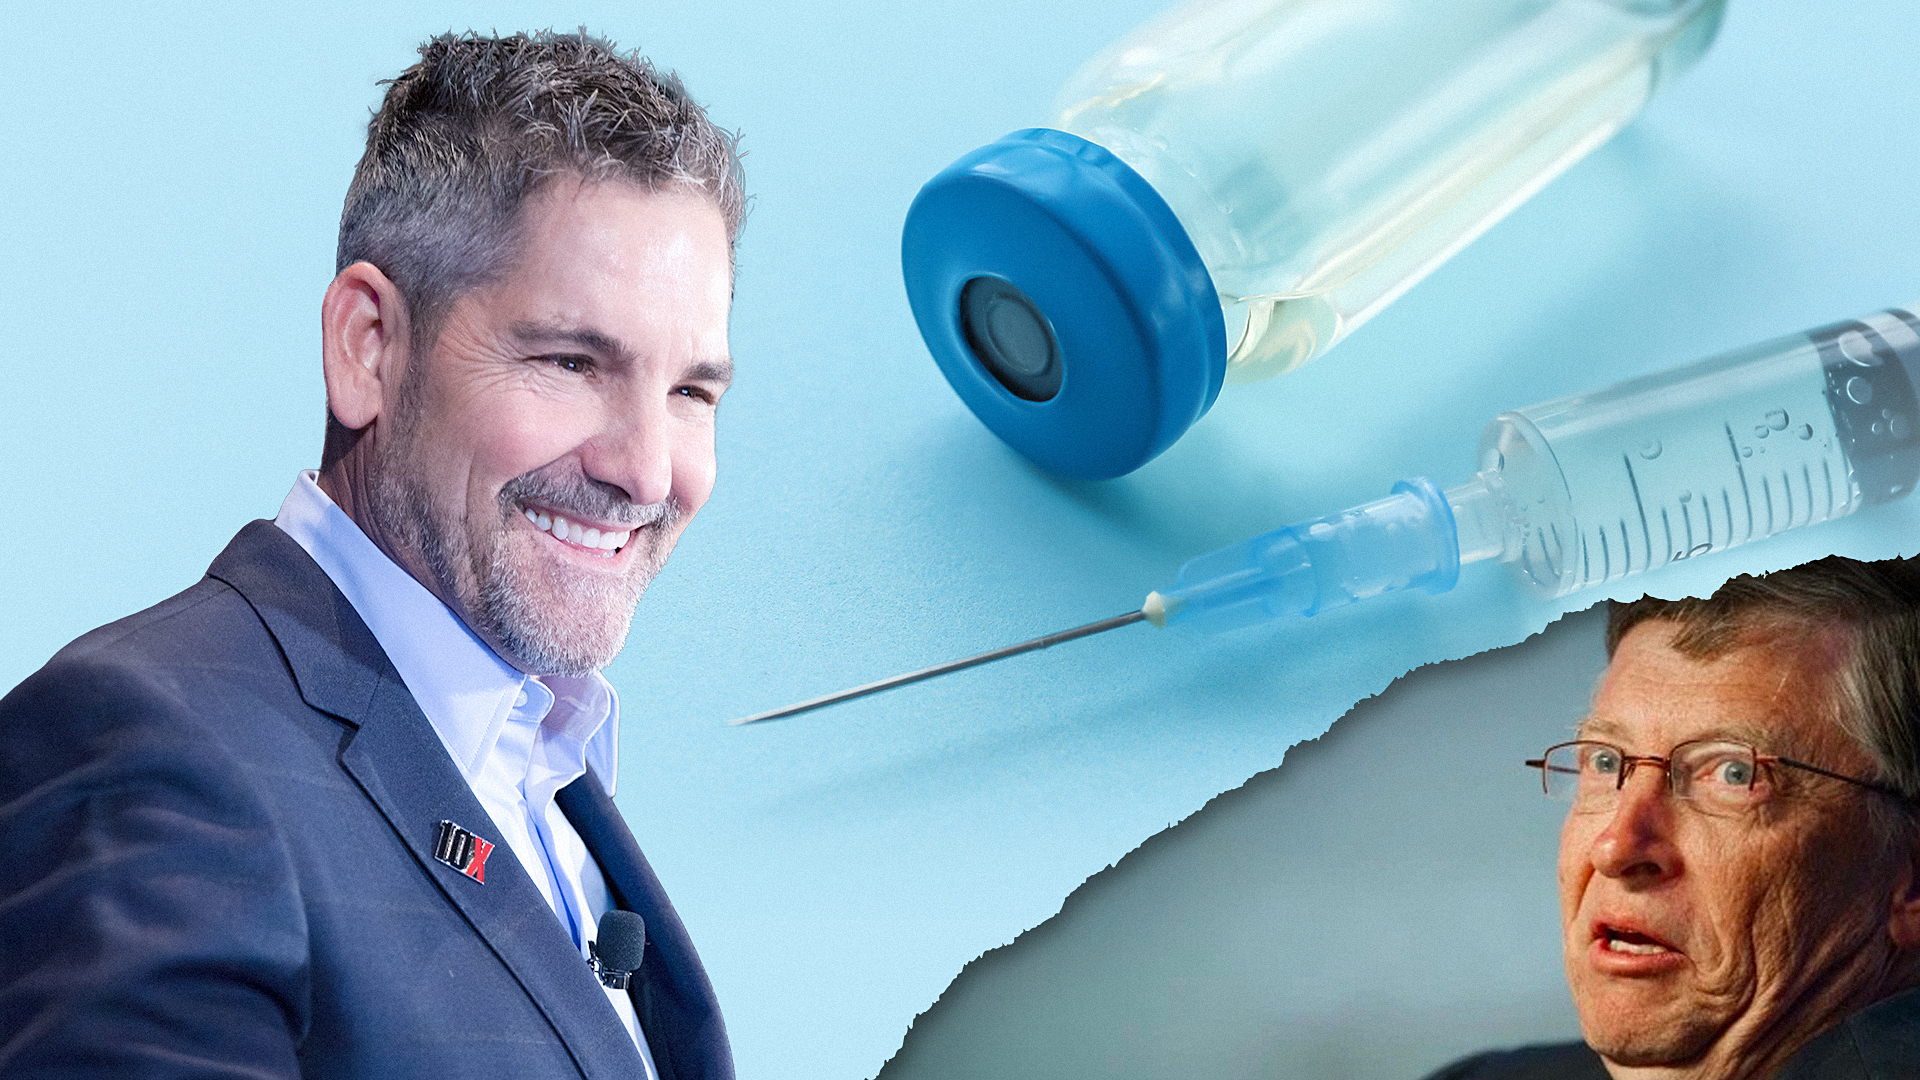 The VACCINE for Covid-19 Won't Help You